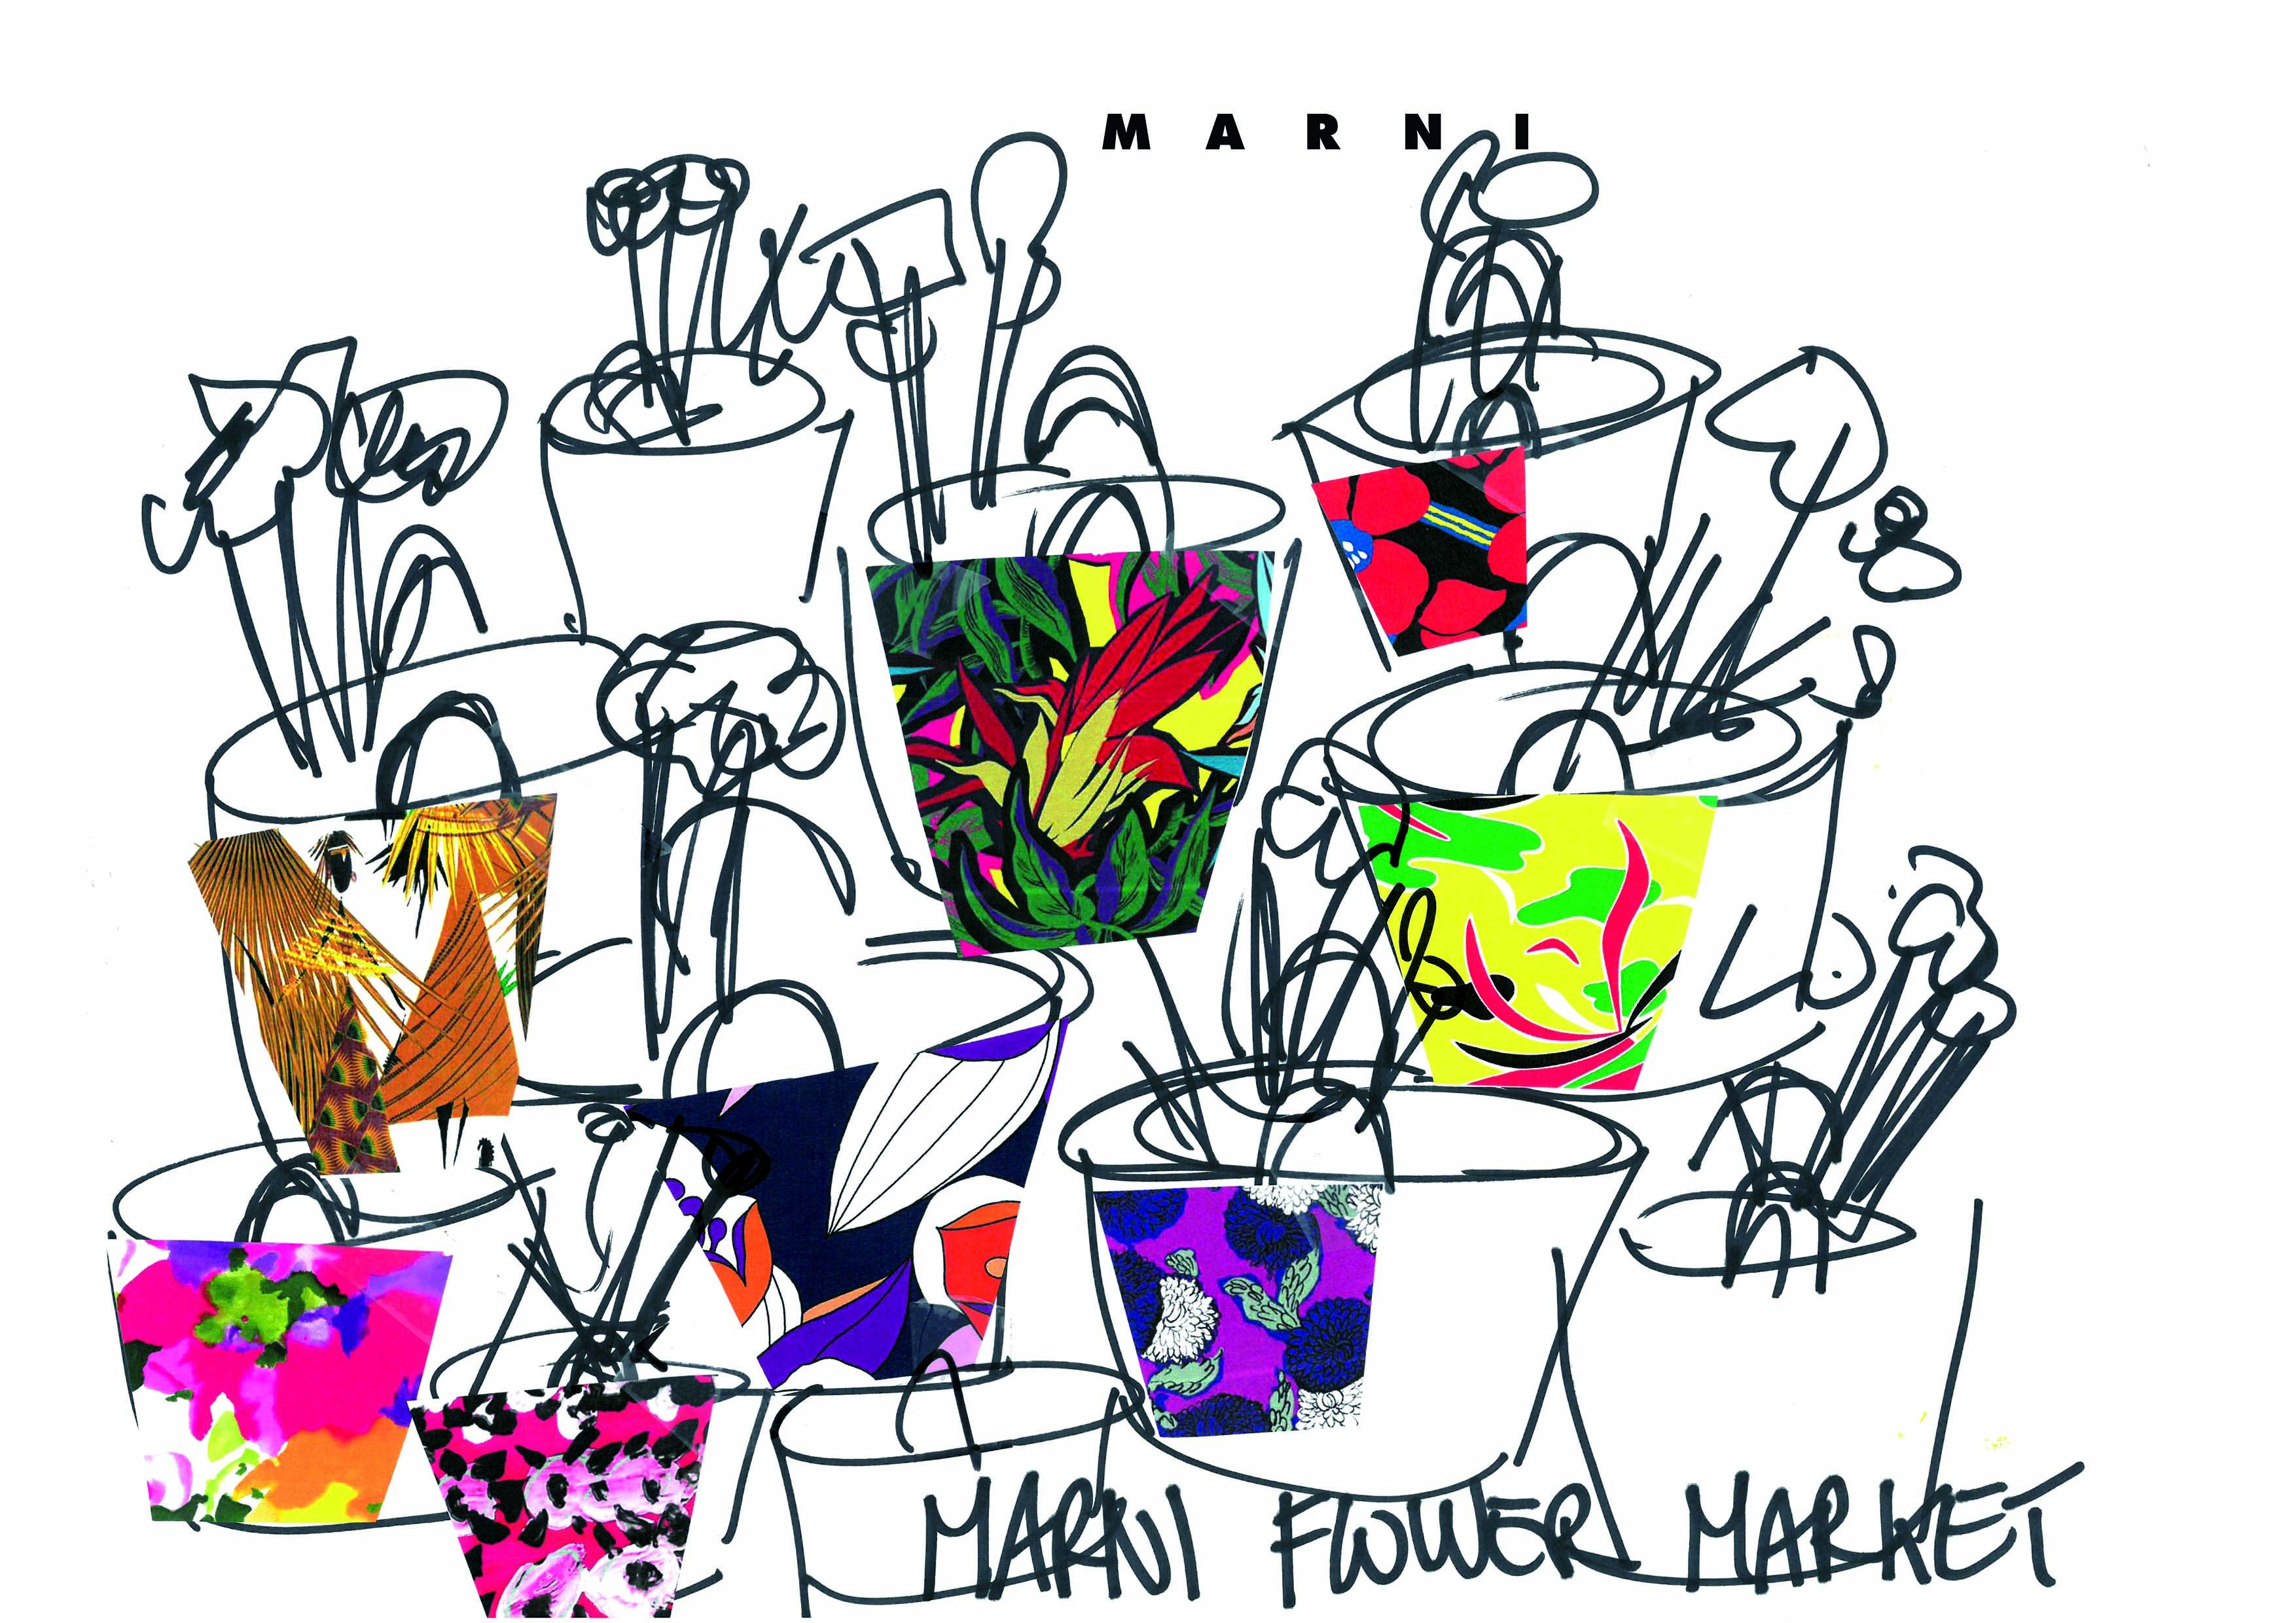 Marni takes floral fashion to new heights with pop.